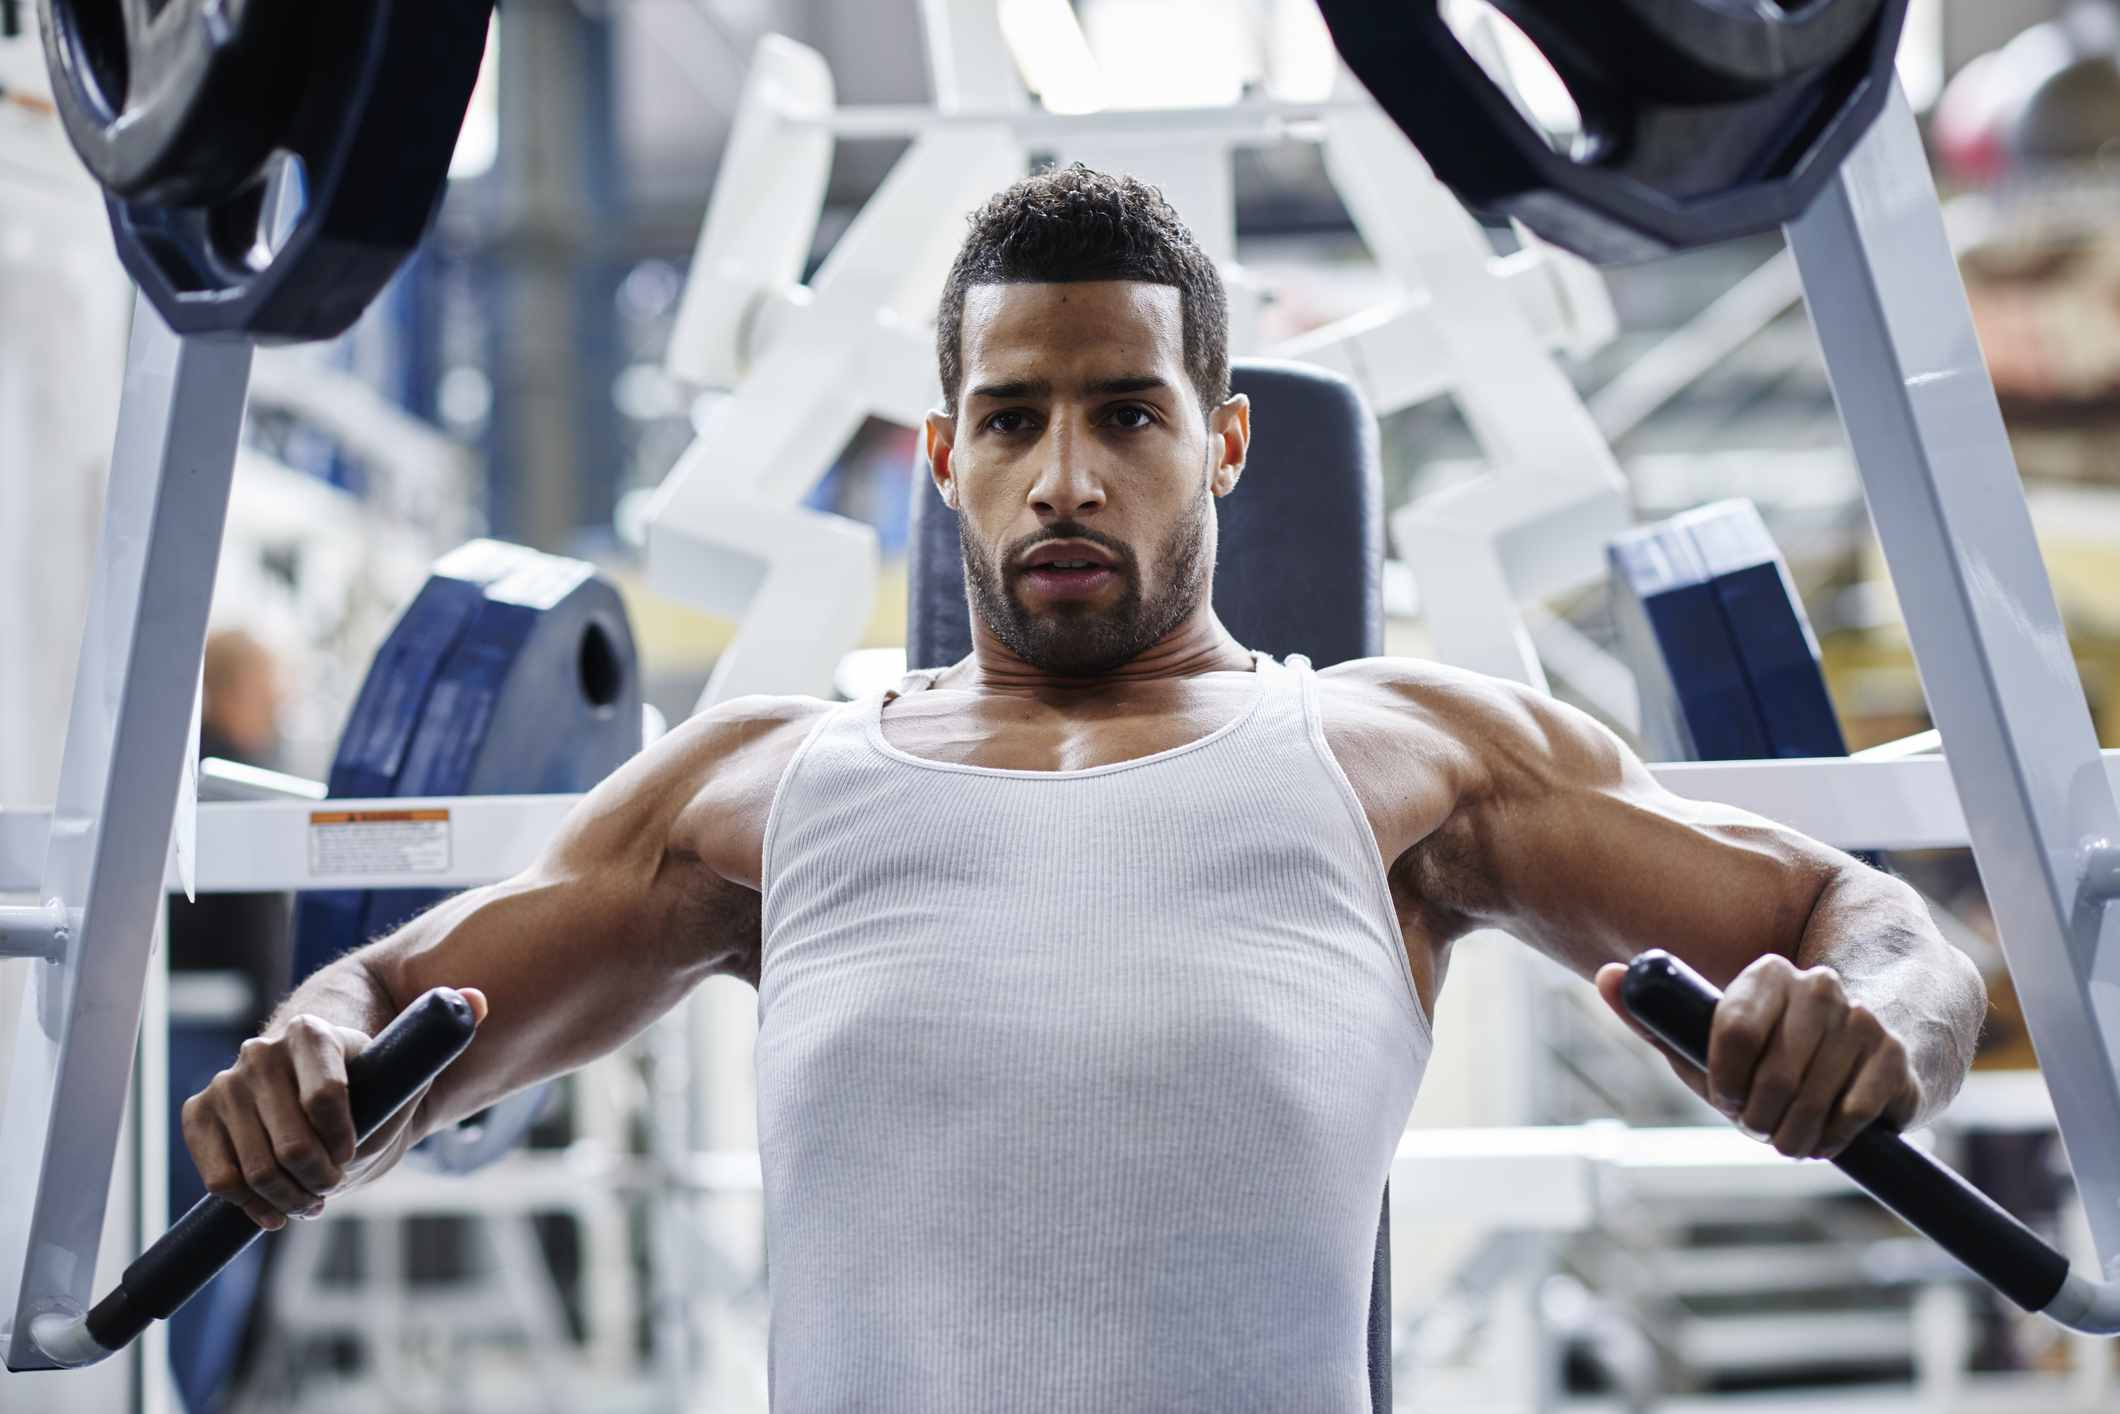 How to Avoid Common Workout Mistakes